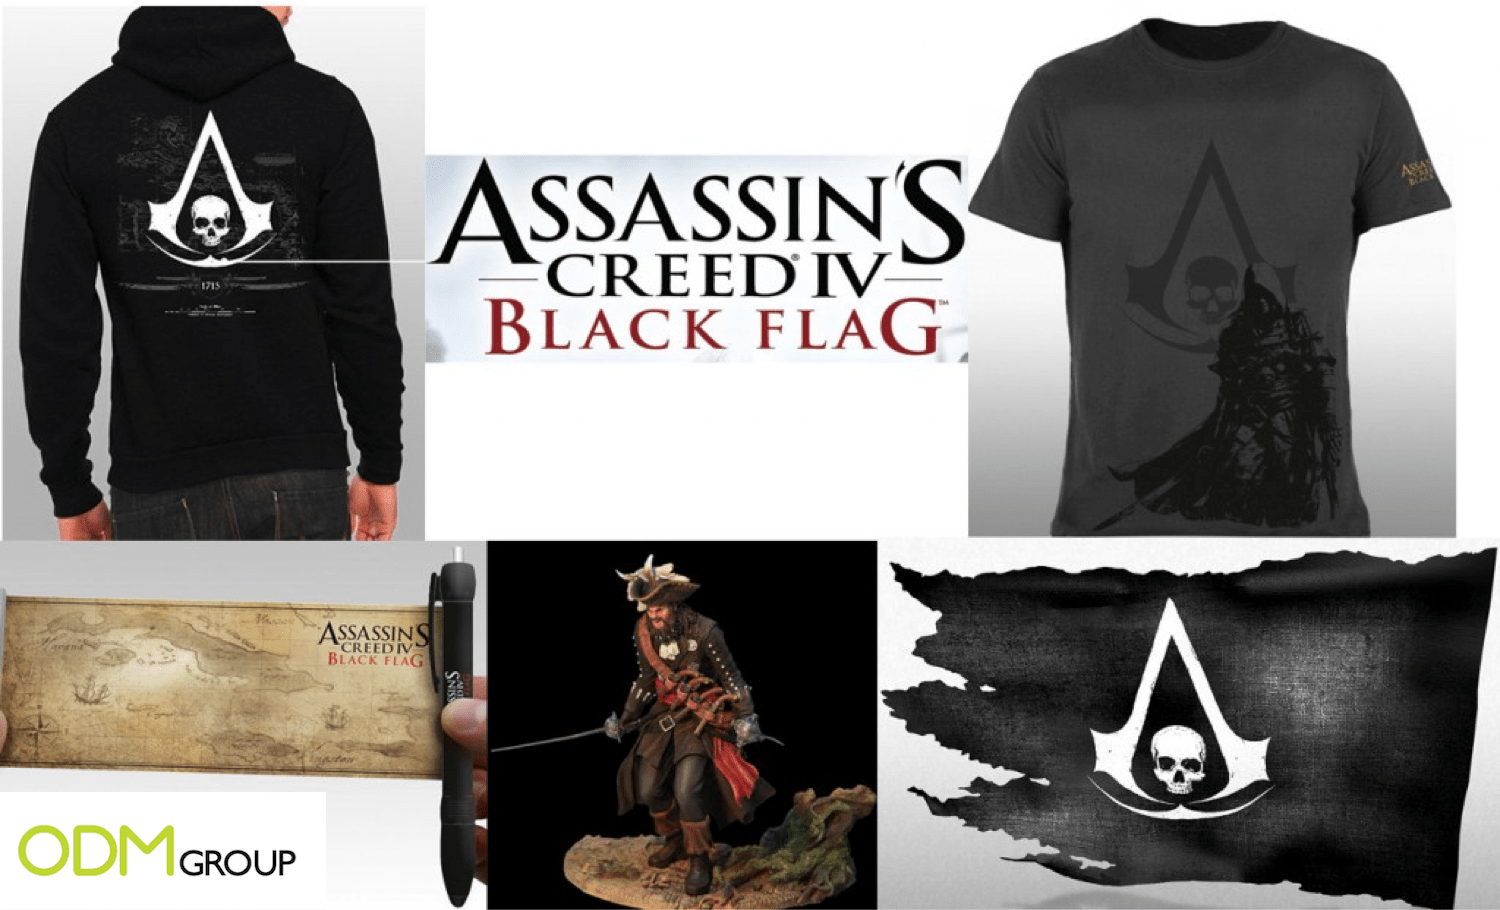 Defy the Assassin's Creed with these high-end goodies.